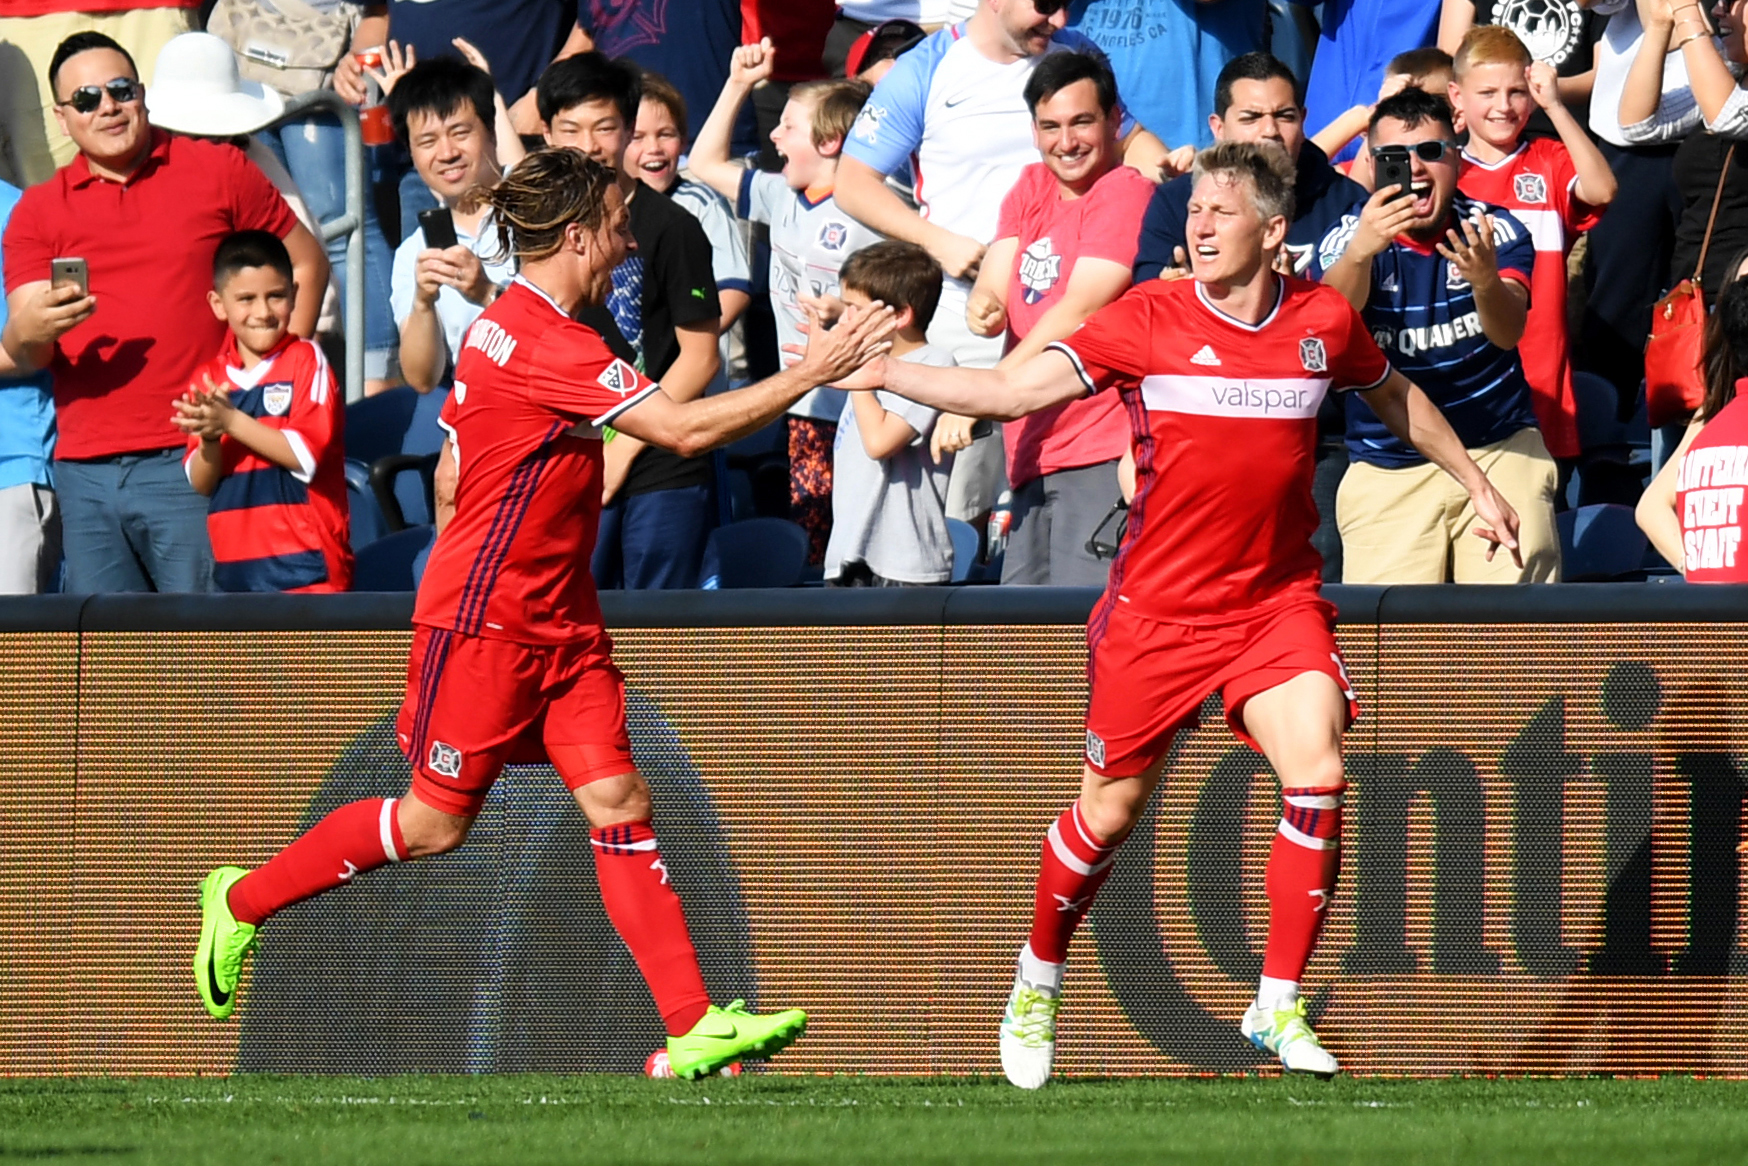 Toronto FC tops Chicago Fire 3-1